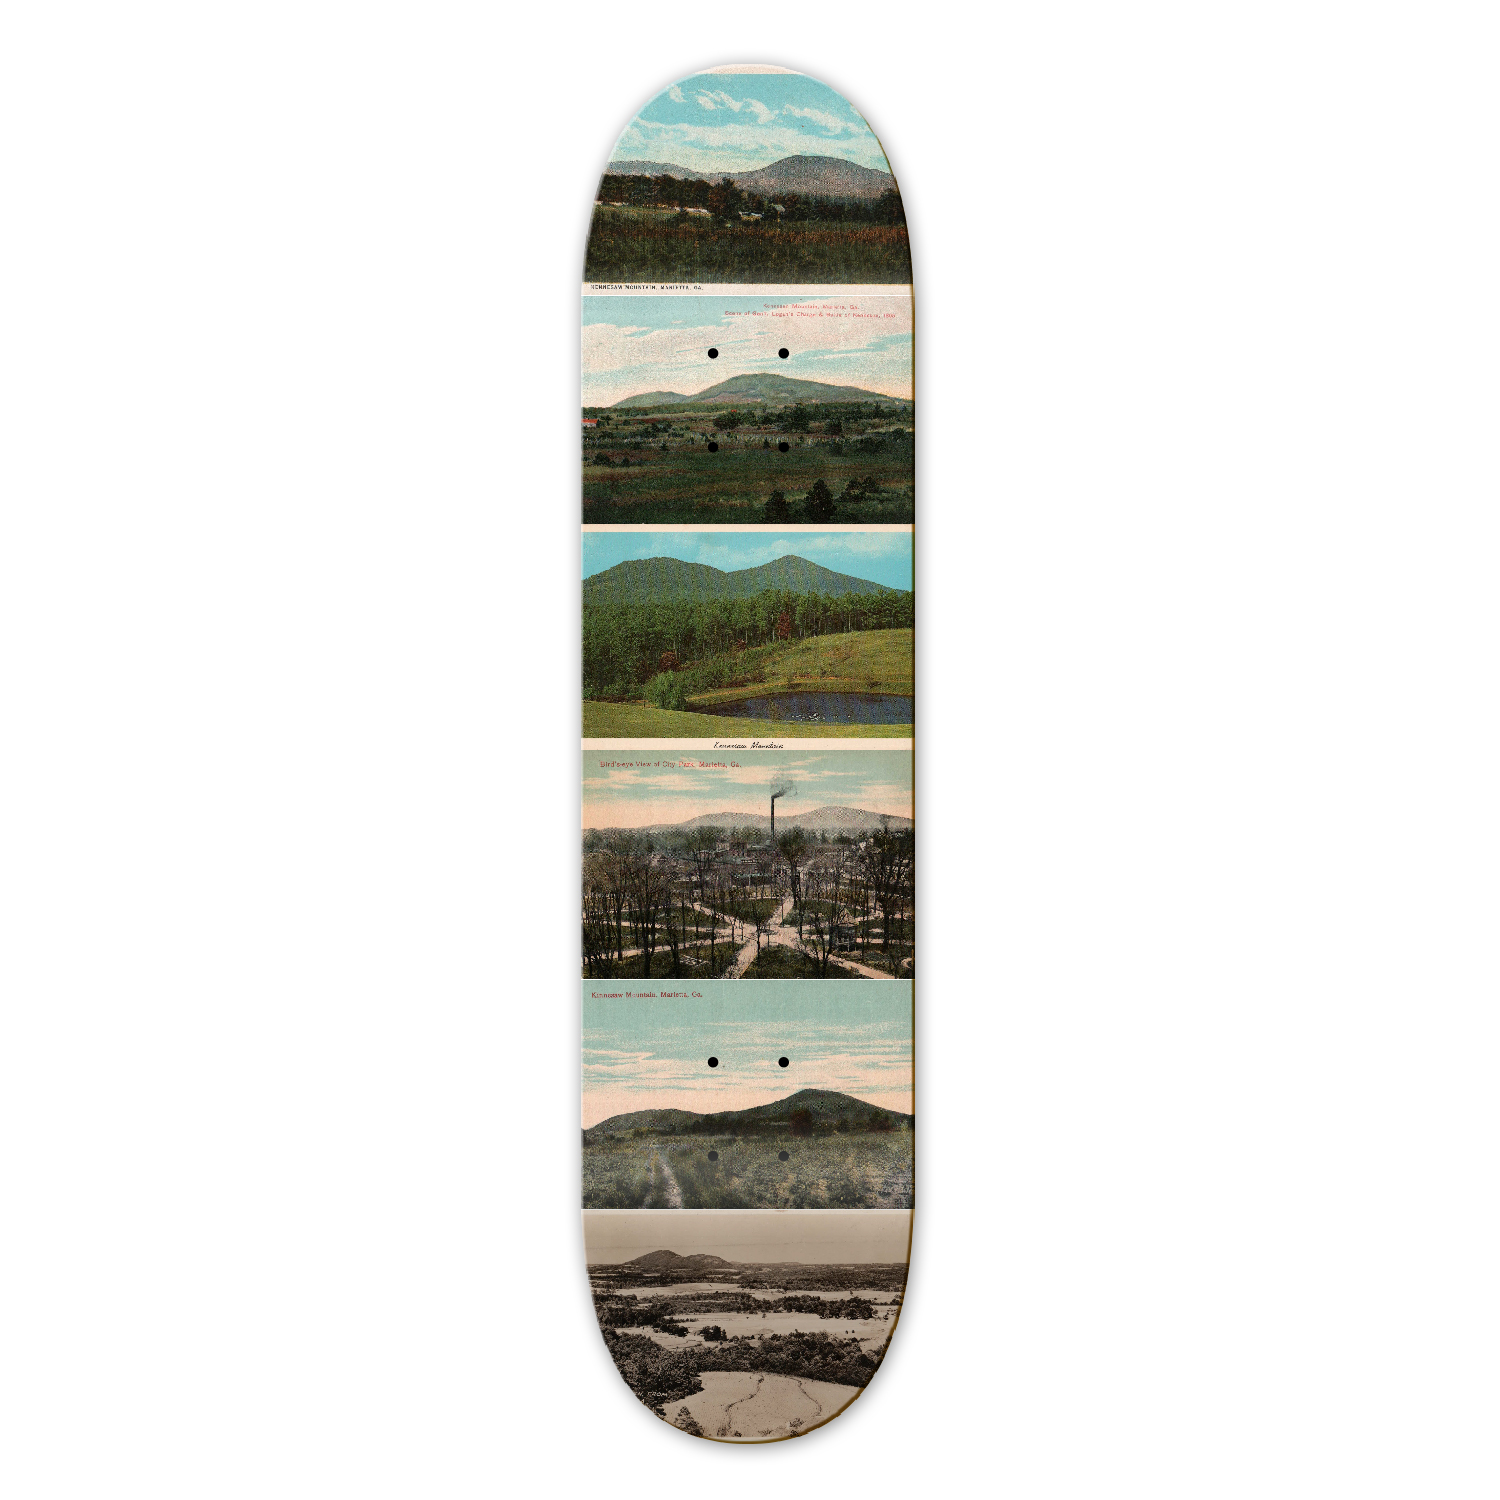 Kennesaw Mountain Skateboard Deck